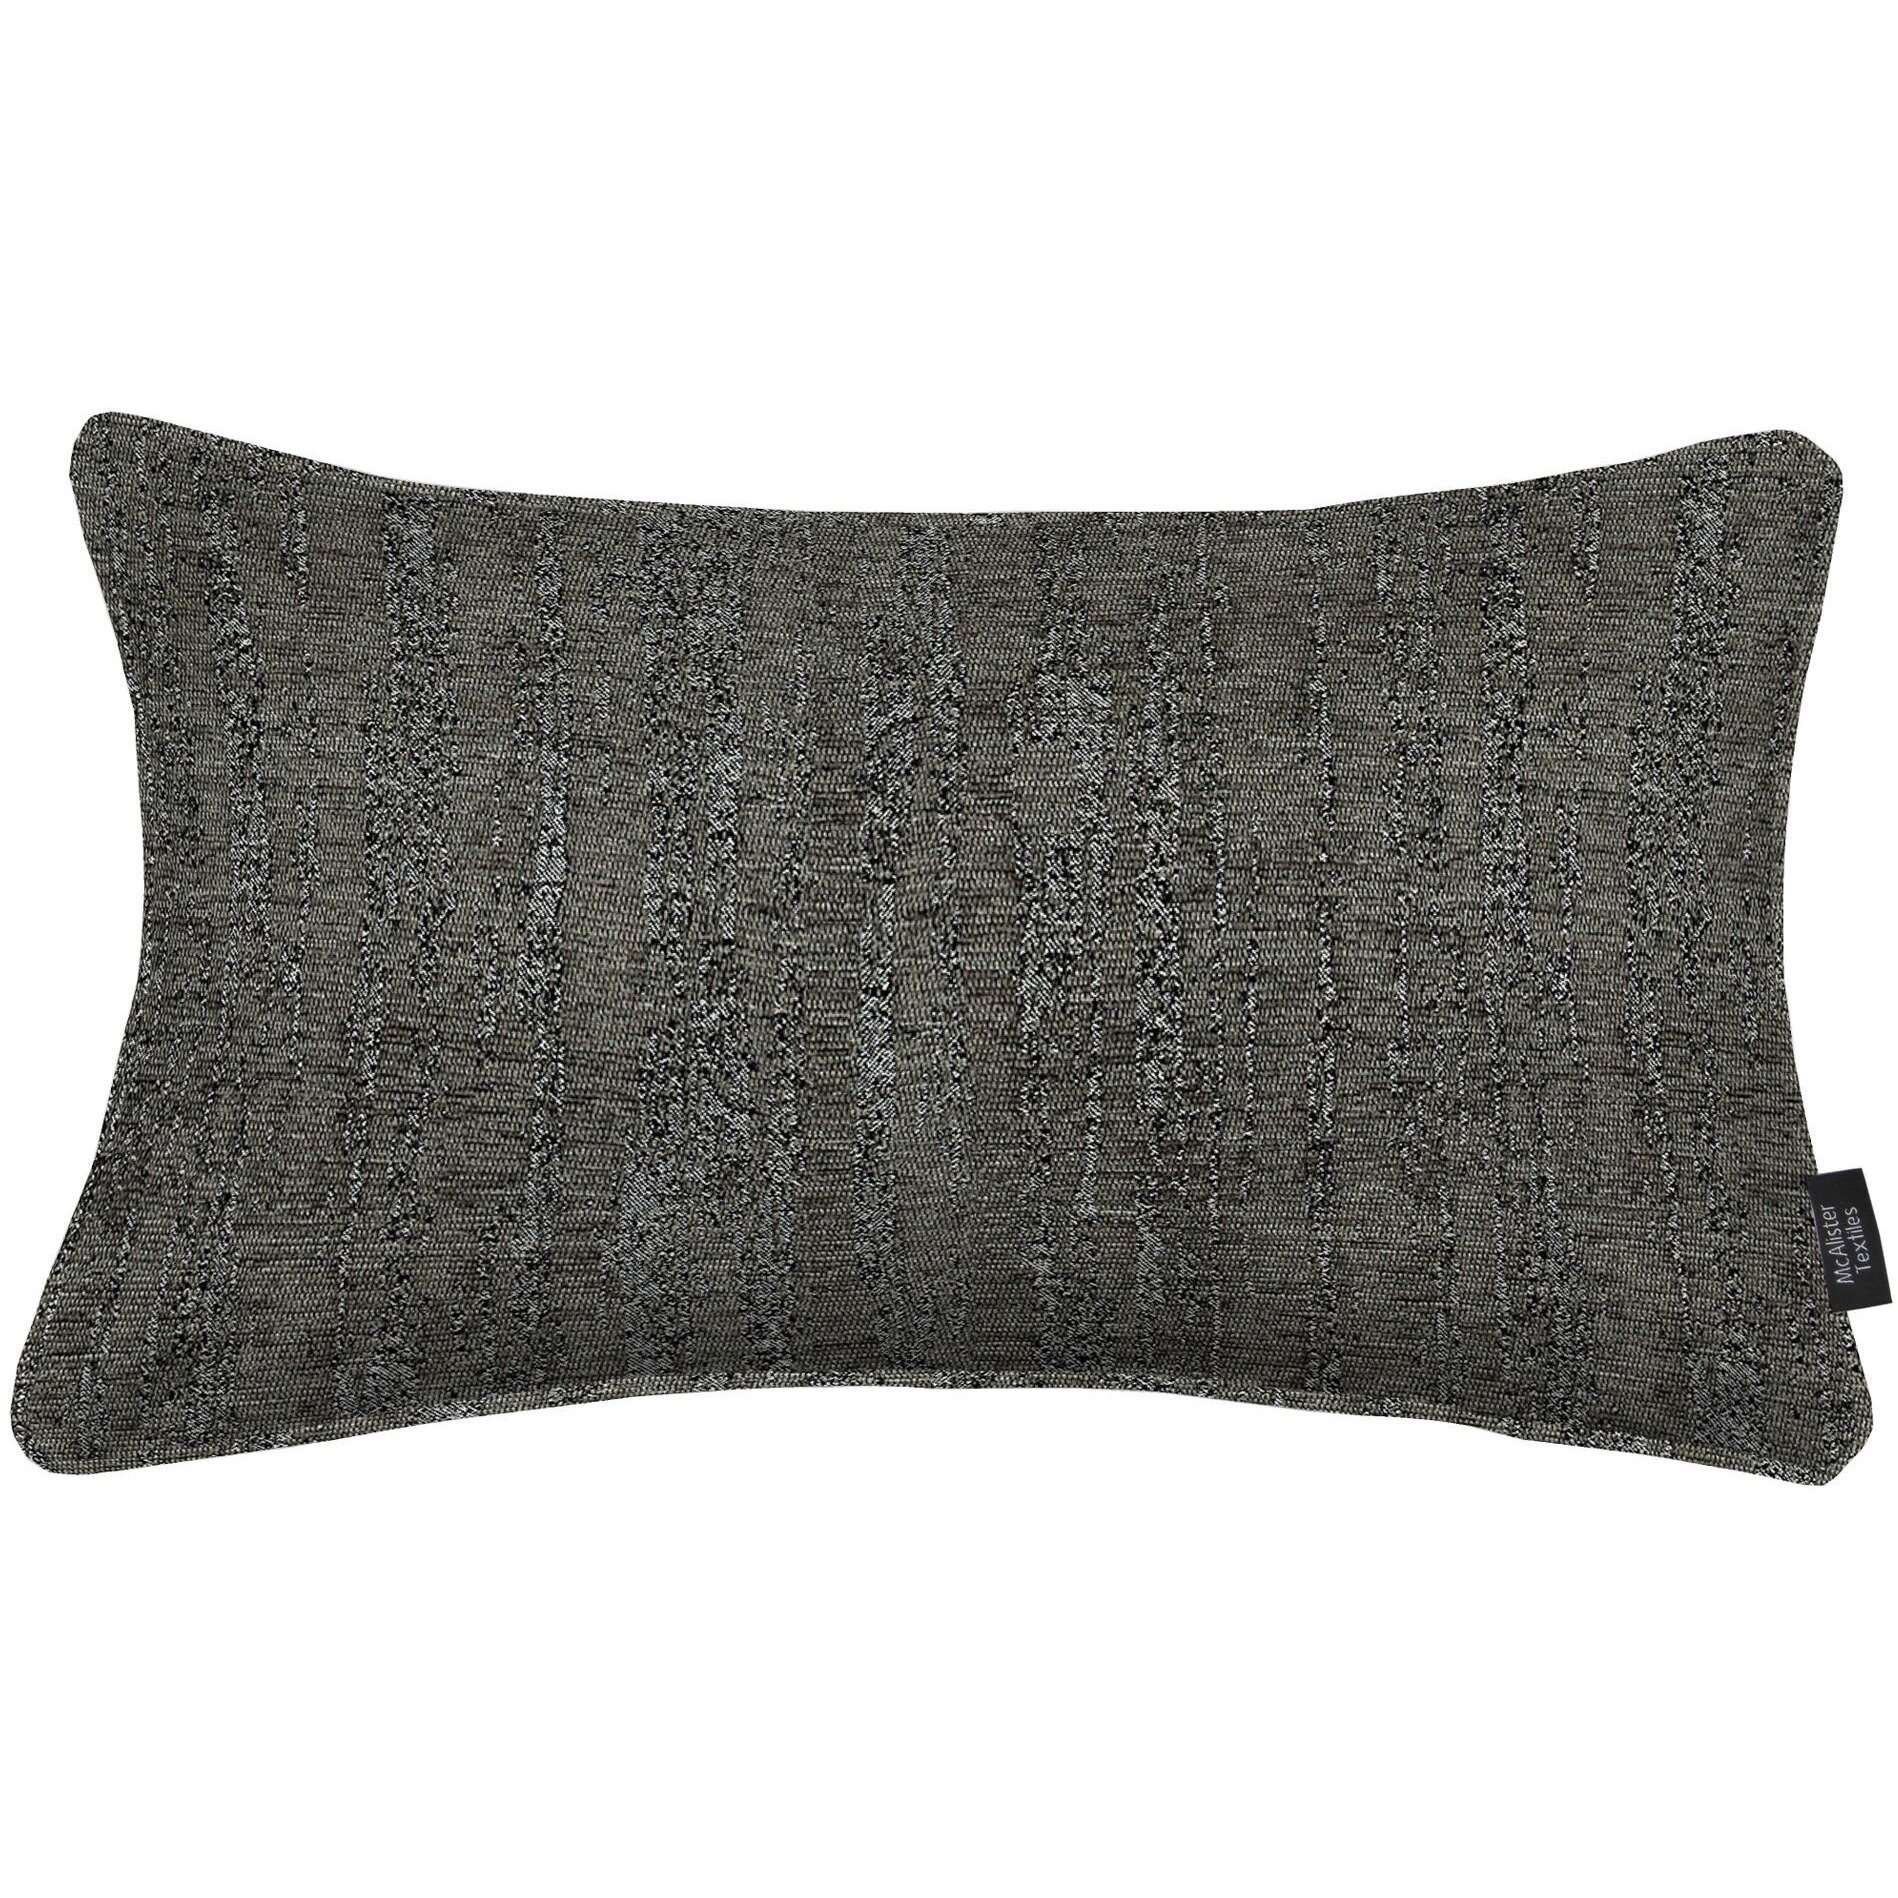 McAlister Textiles Textured Chenille Charcoal Grey Pillow Pillow Cover Only 50cm x 30cm